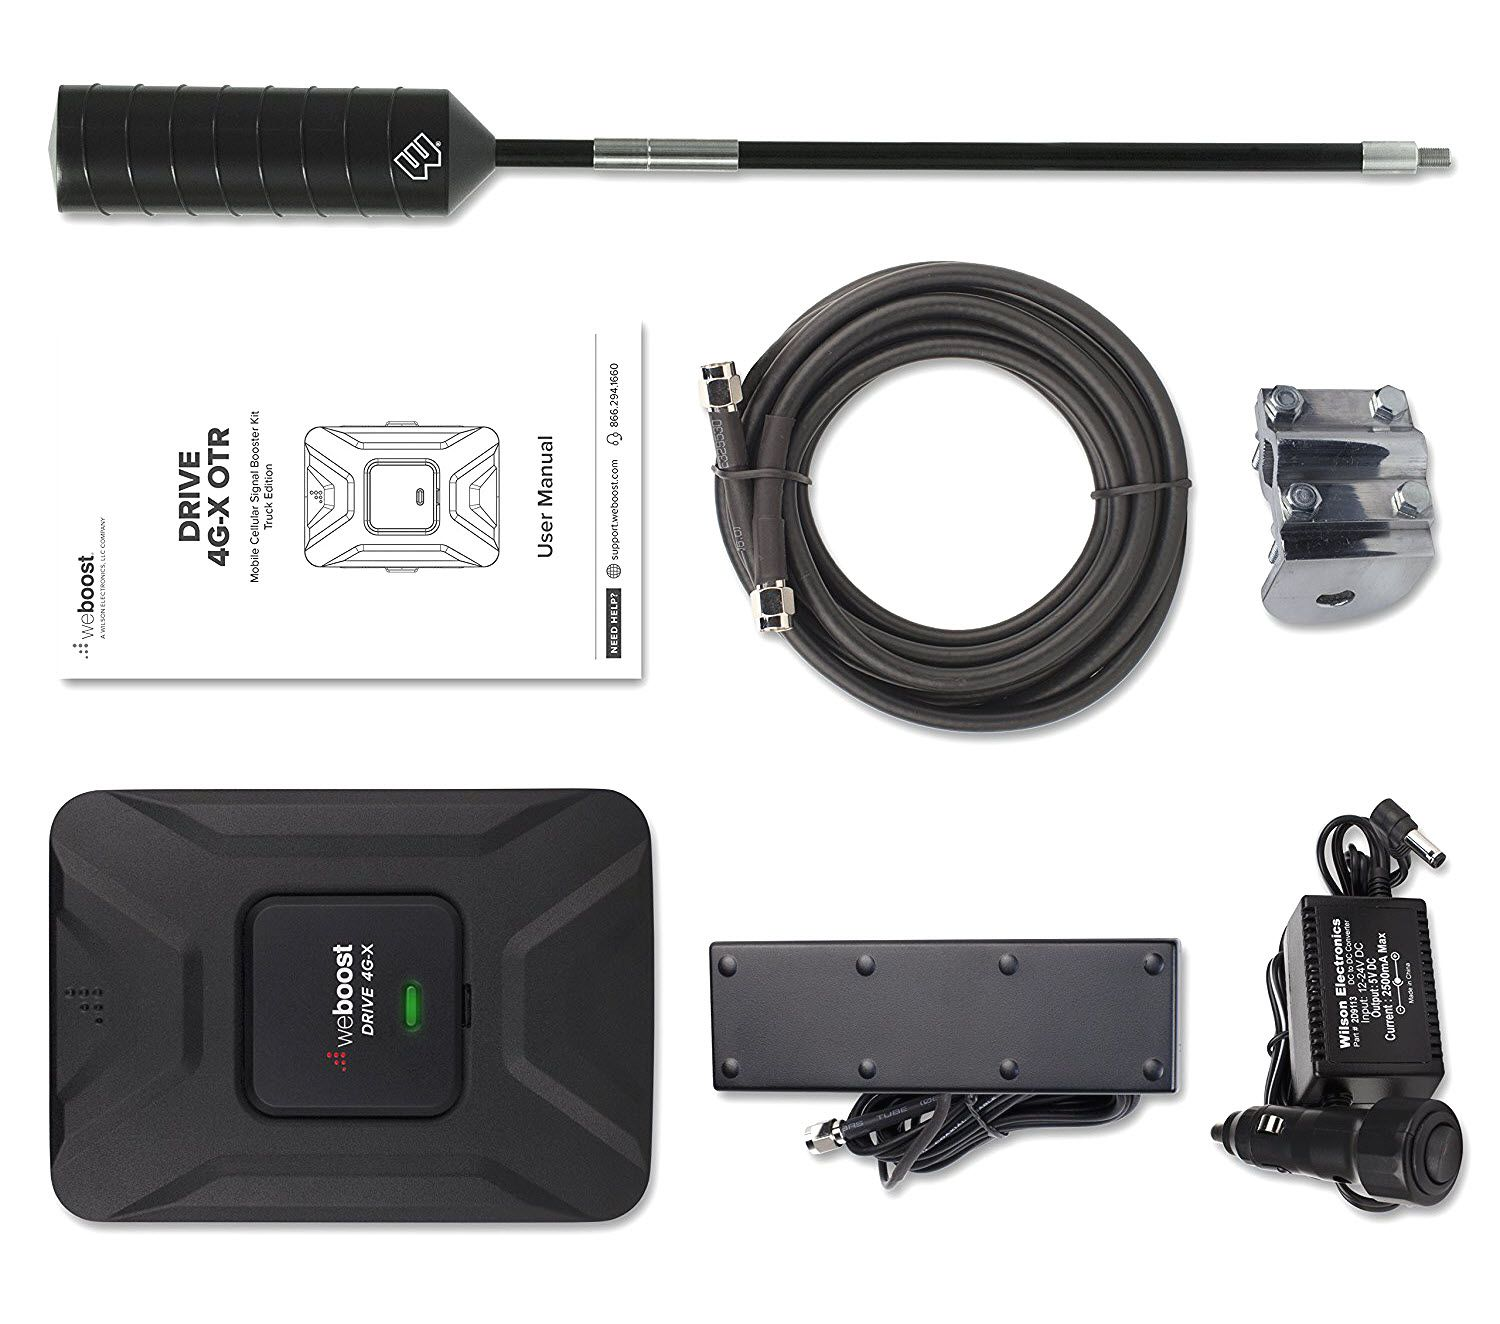 Cell Phone Booster Jeep Off Road 4x4 Expedition In 2020 Cell Phone Booster Cell Phone Antenna Cell